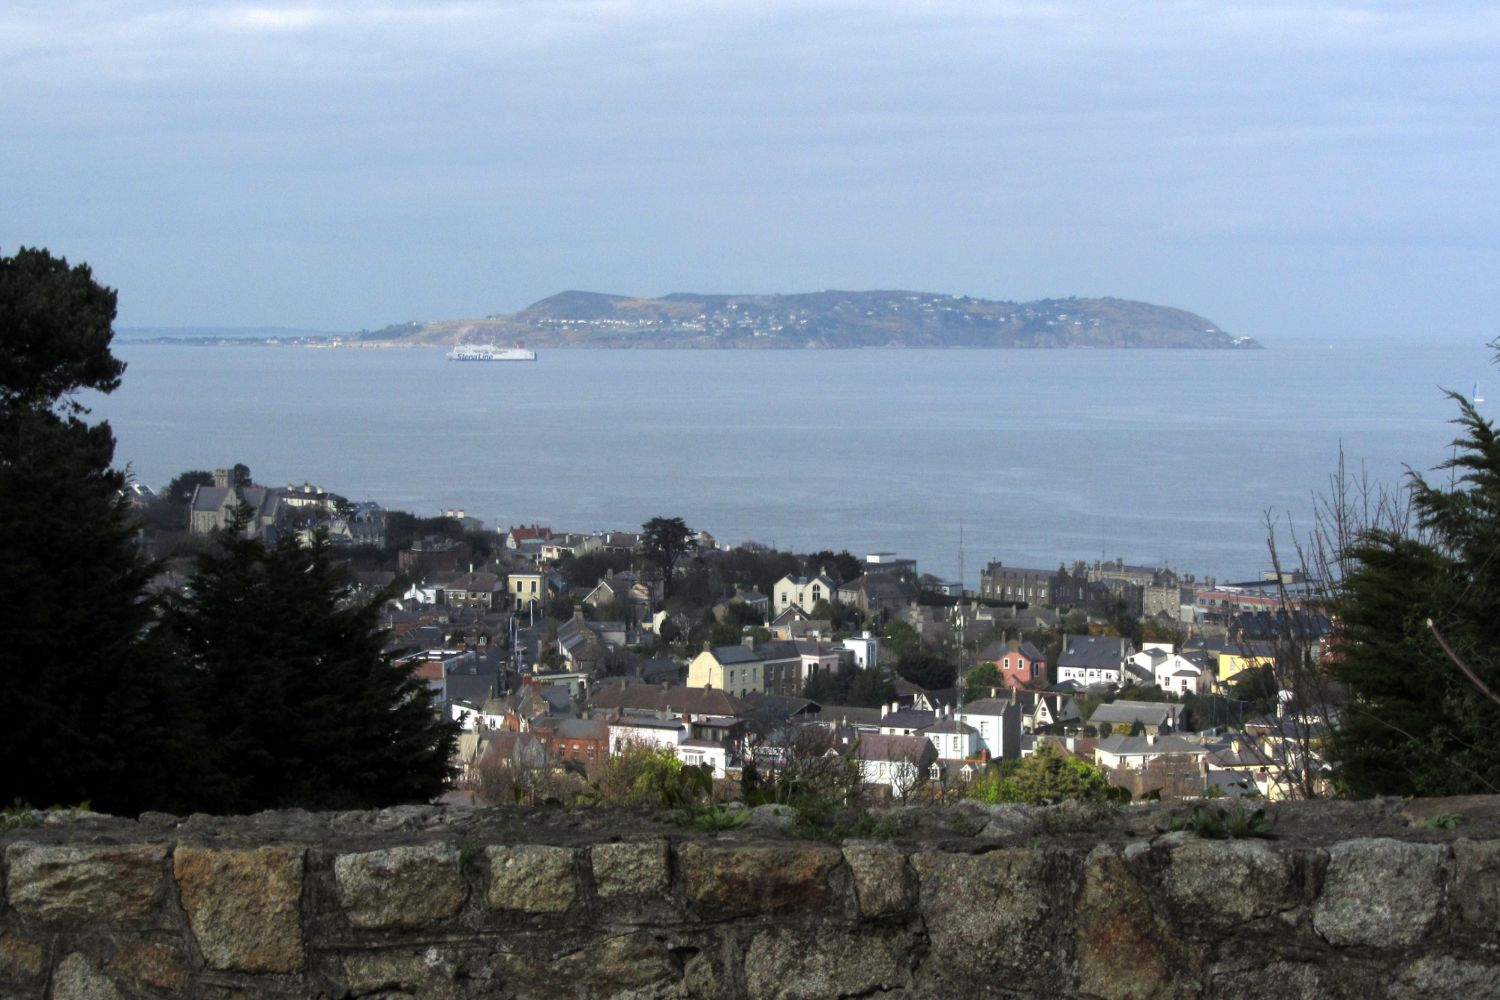 Dublin Bay view from Dalkey